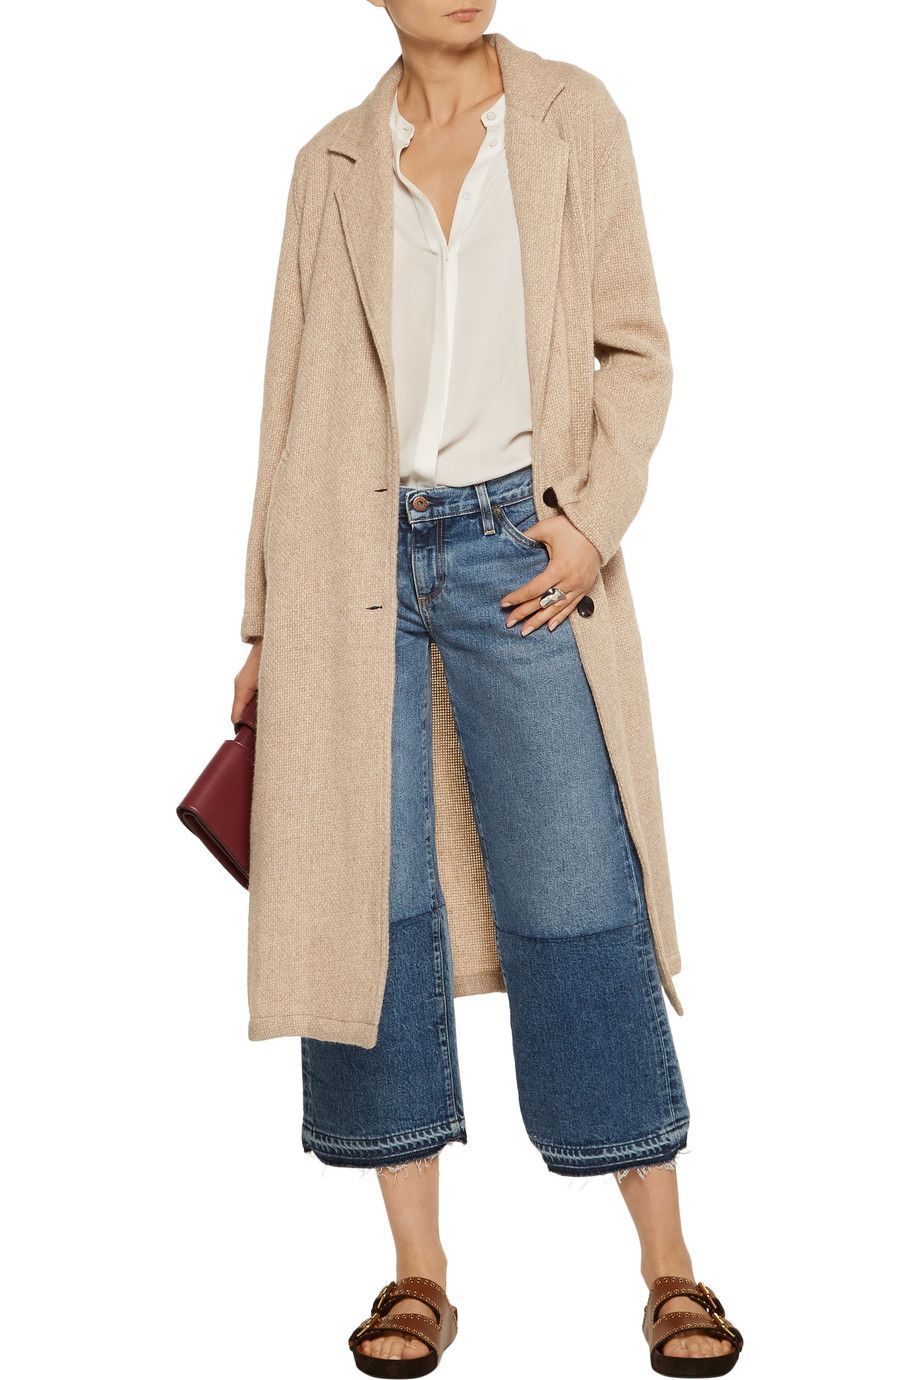 The Best Discounted Designer Coats From The Outnet S Fall